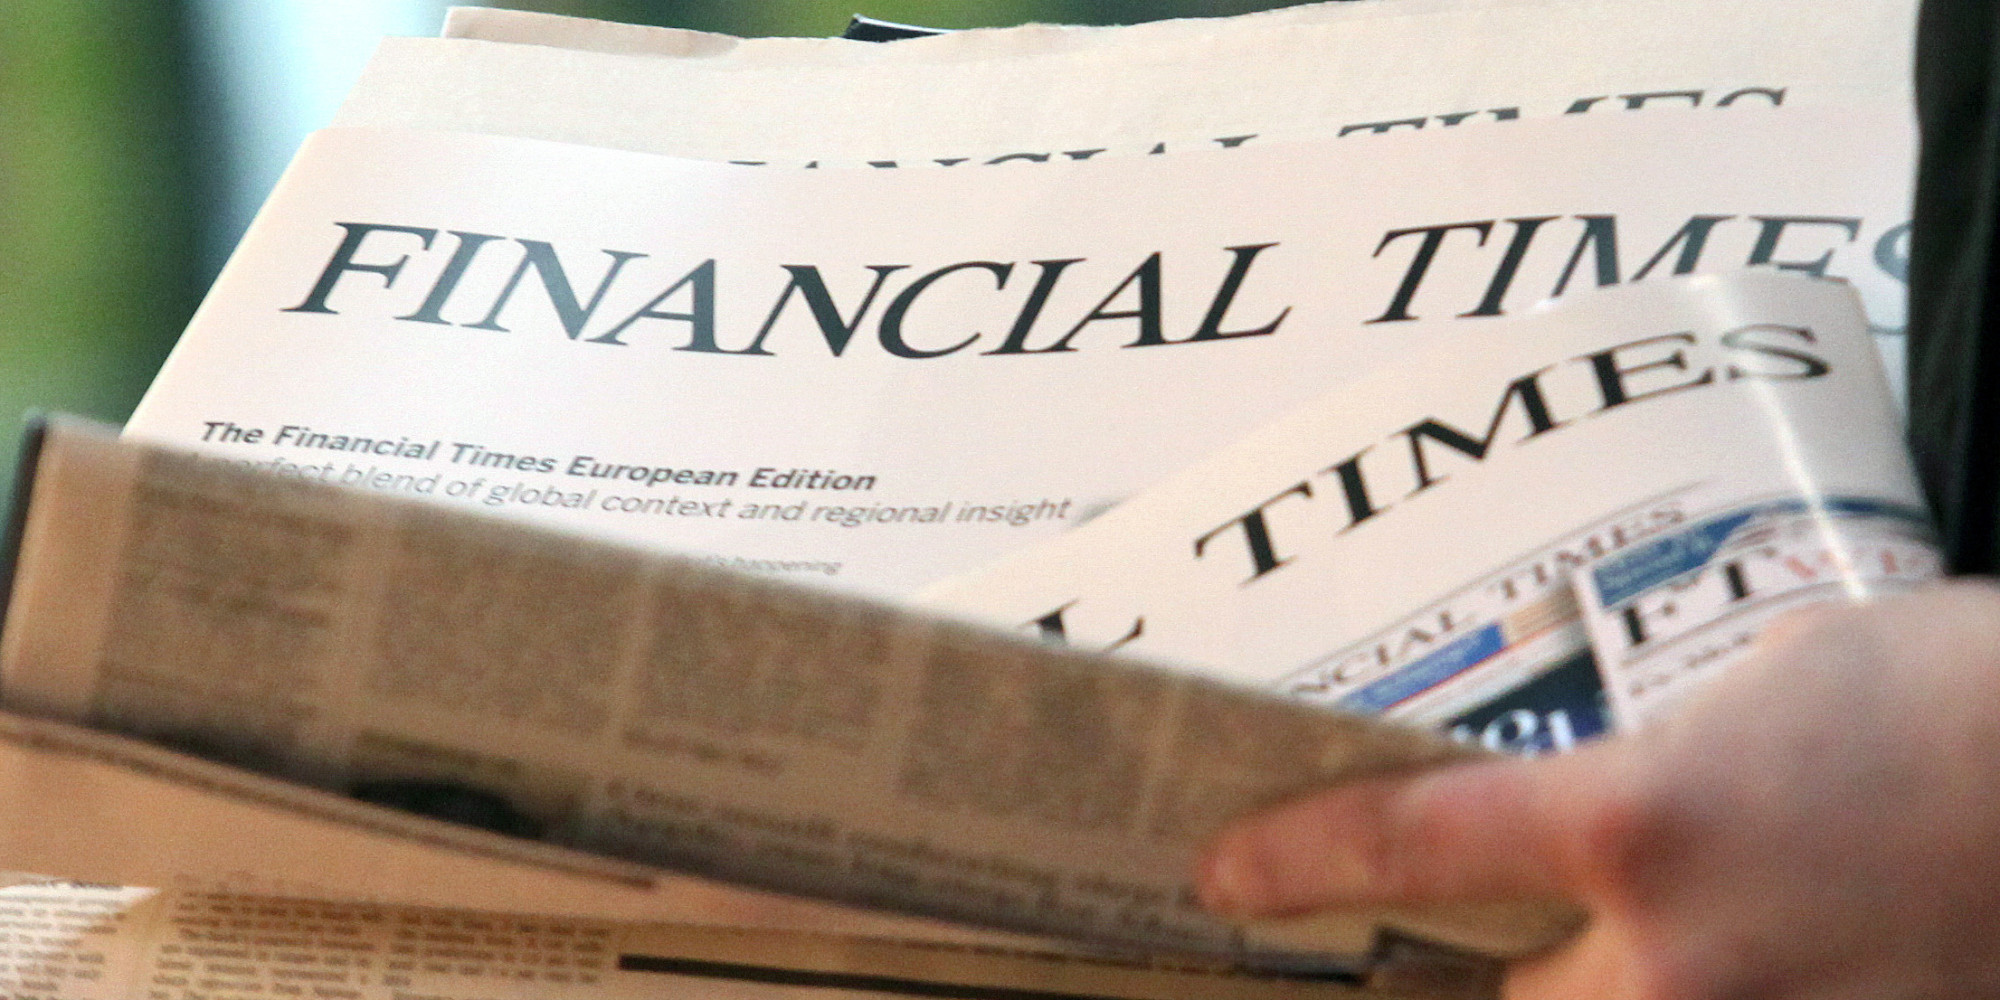 Copies of the English edition of the Financial Times are handed out at the central station in Hamburg,Germany, 07December 2012. After 13 years, the FTD sells its final issue. Photo: Bodo Marks